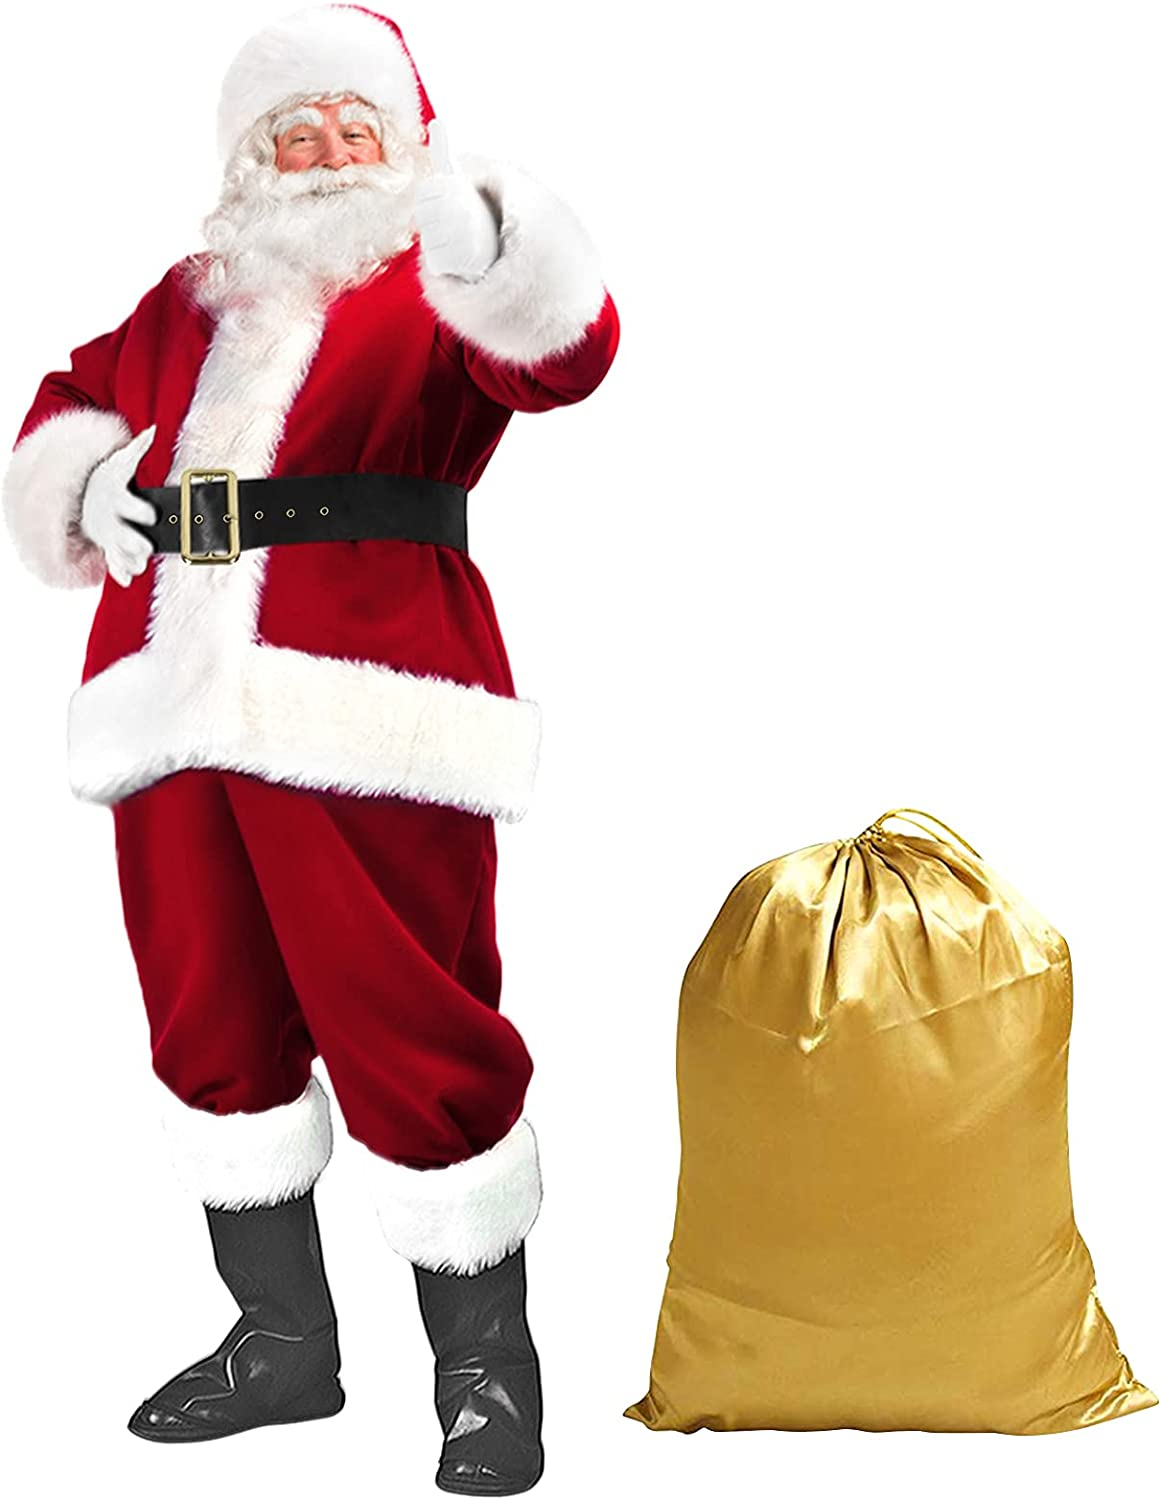 Santa Suit Christmas Claus Costume 67% OFF of fixed price Adult Women Men Overseas parallel import regular item for Cos